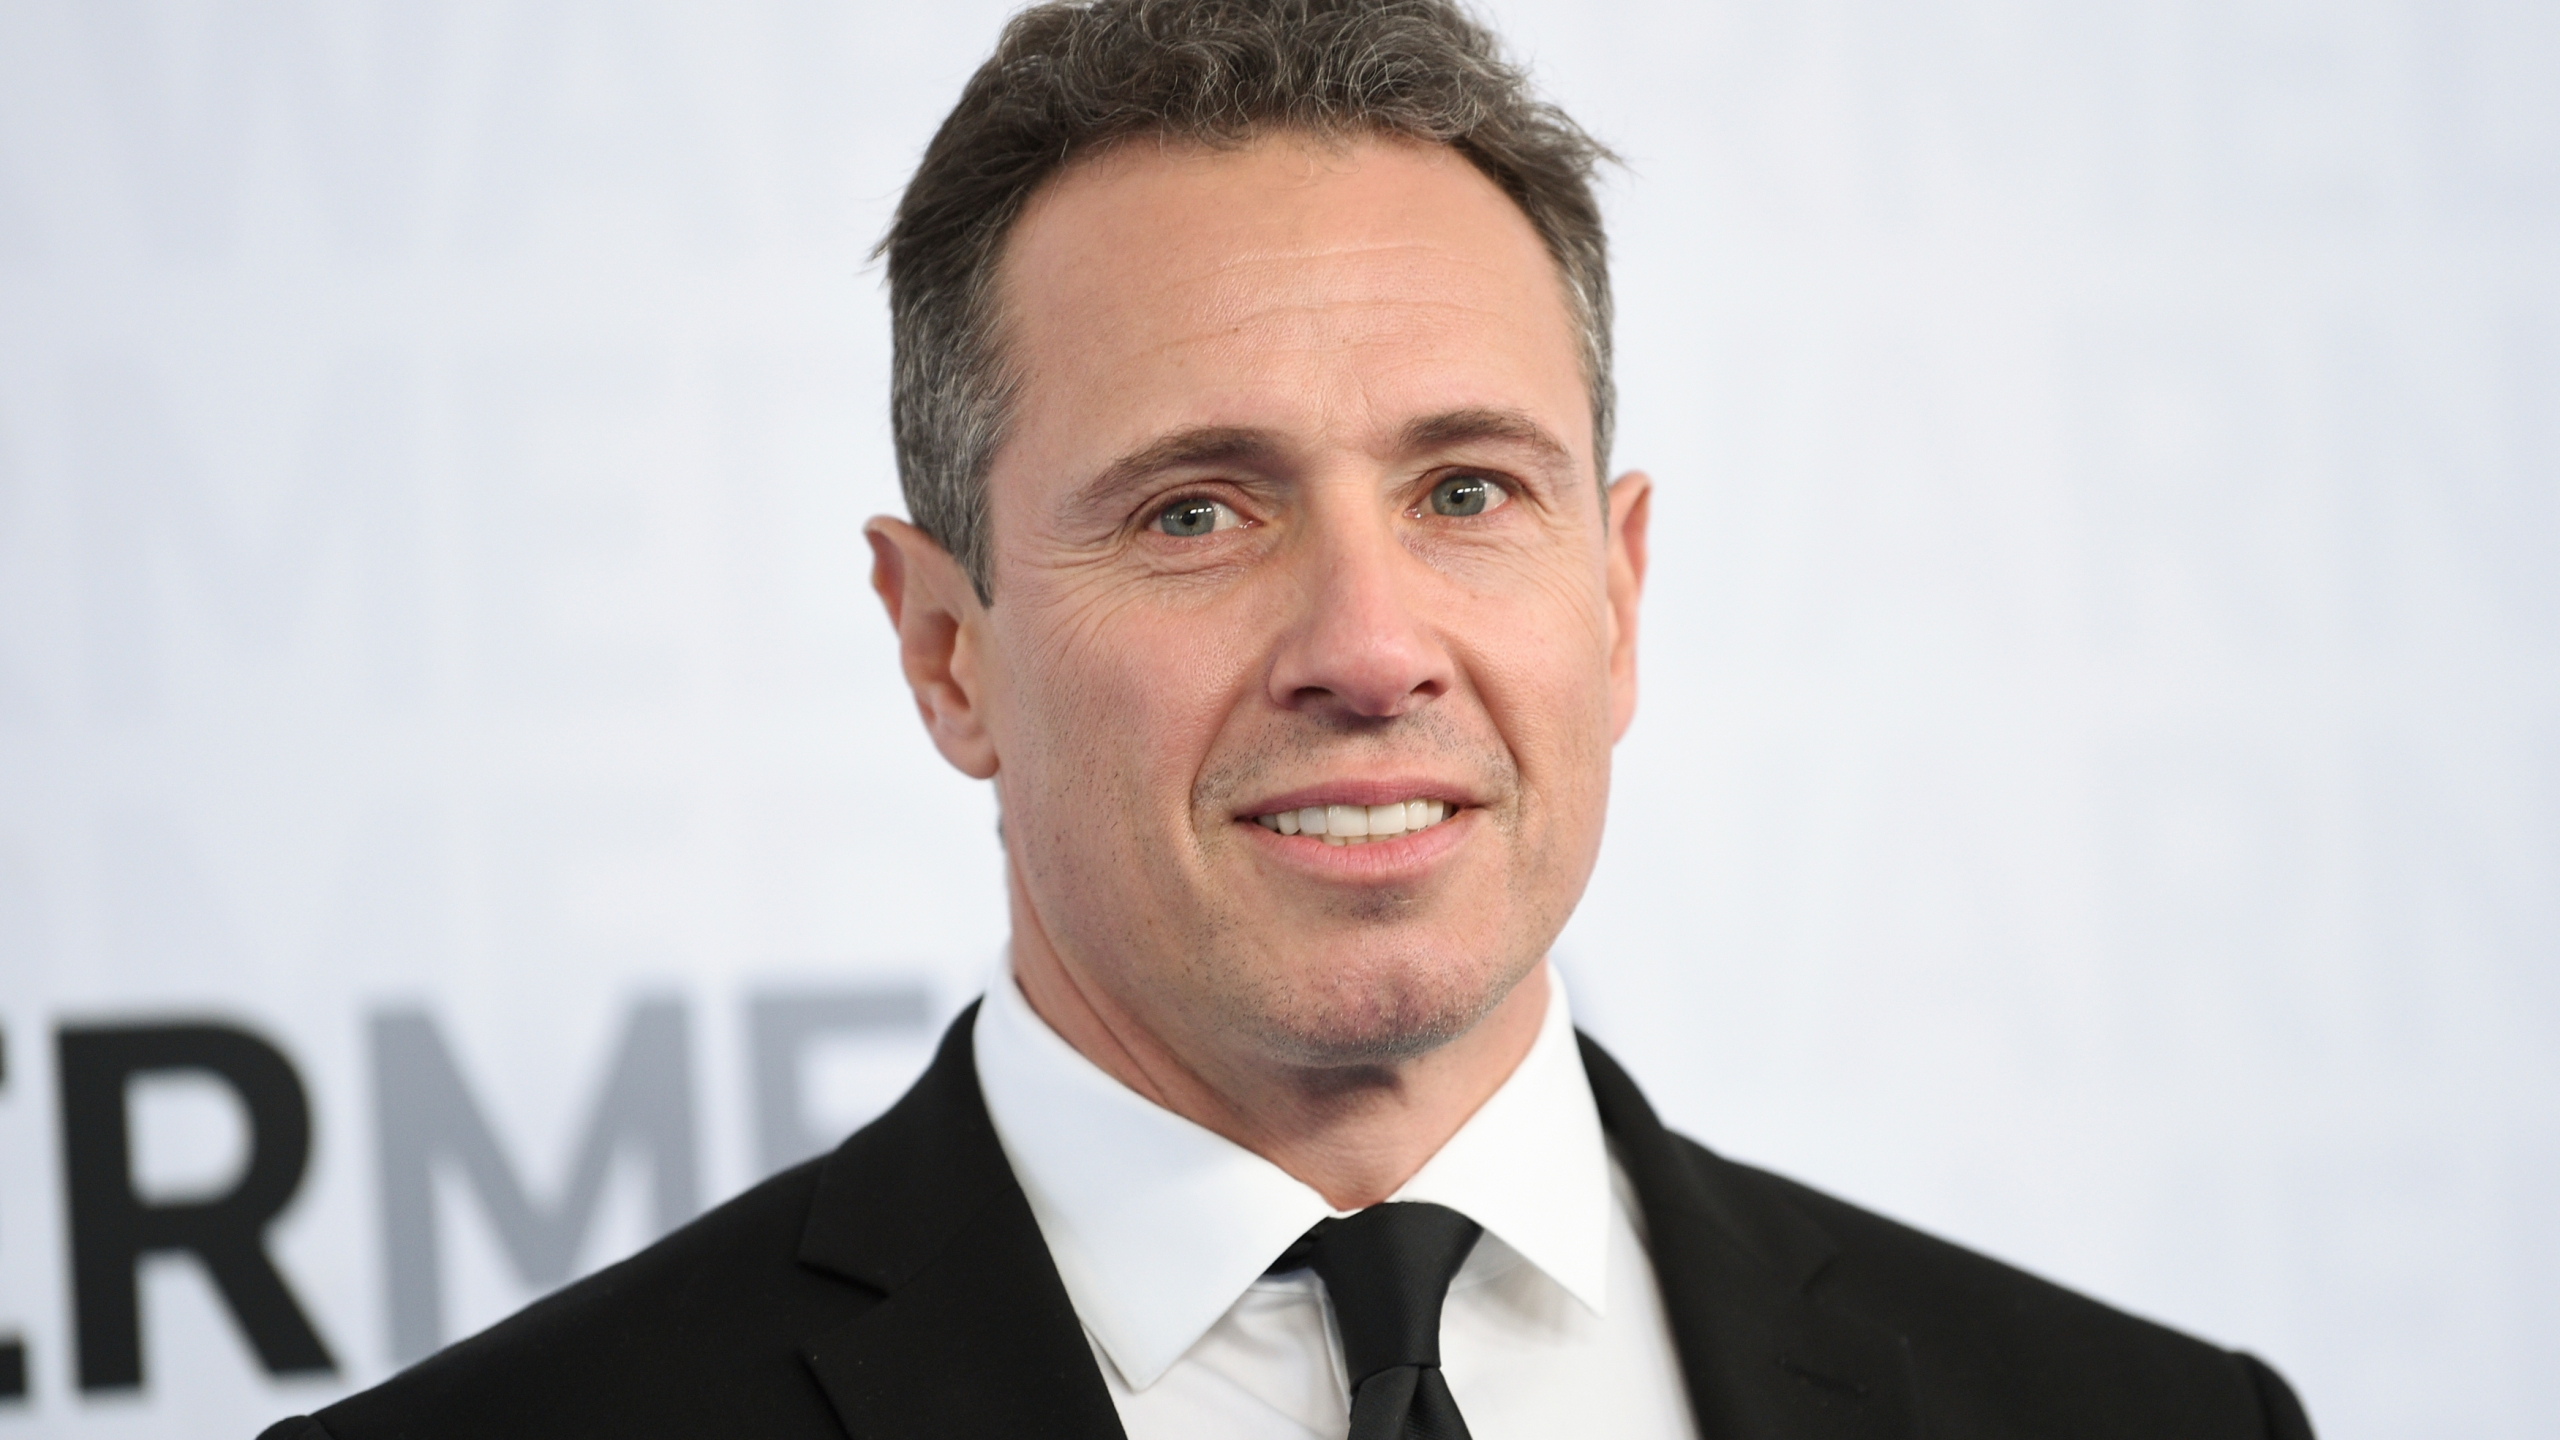 This May 15, 2019 file photo shows CNN news anchor Chris Cuomo at the WarnerMedia Upfront in New York. Shelley Ross, a veteran TV news executive, said in an opinion piece in the New York Times that CNN anchor Chris Cuomo sexually harassed her by squeezing her buttocks at a party in 2005. (Photo by Evan Agostini/Invision/AP, File)